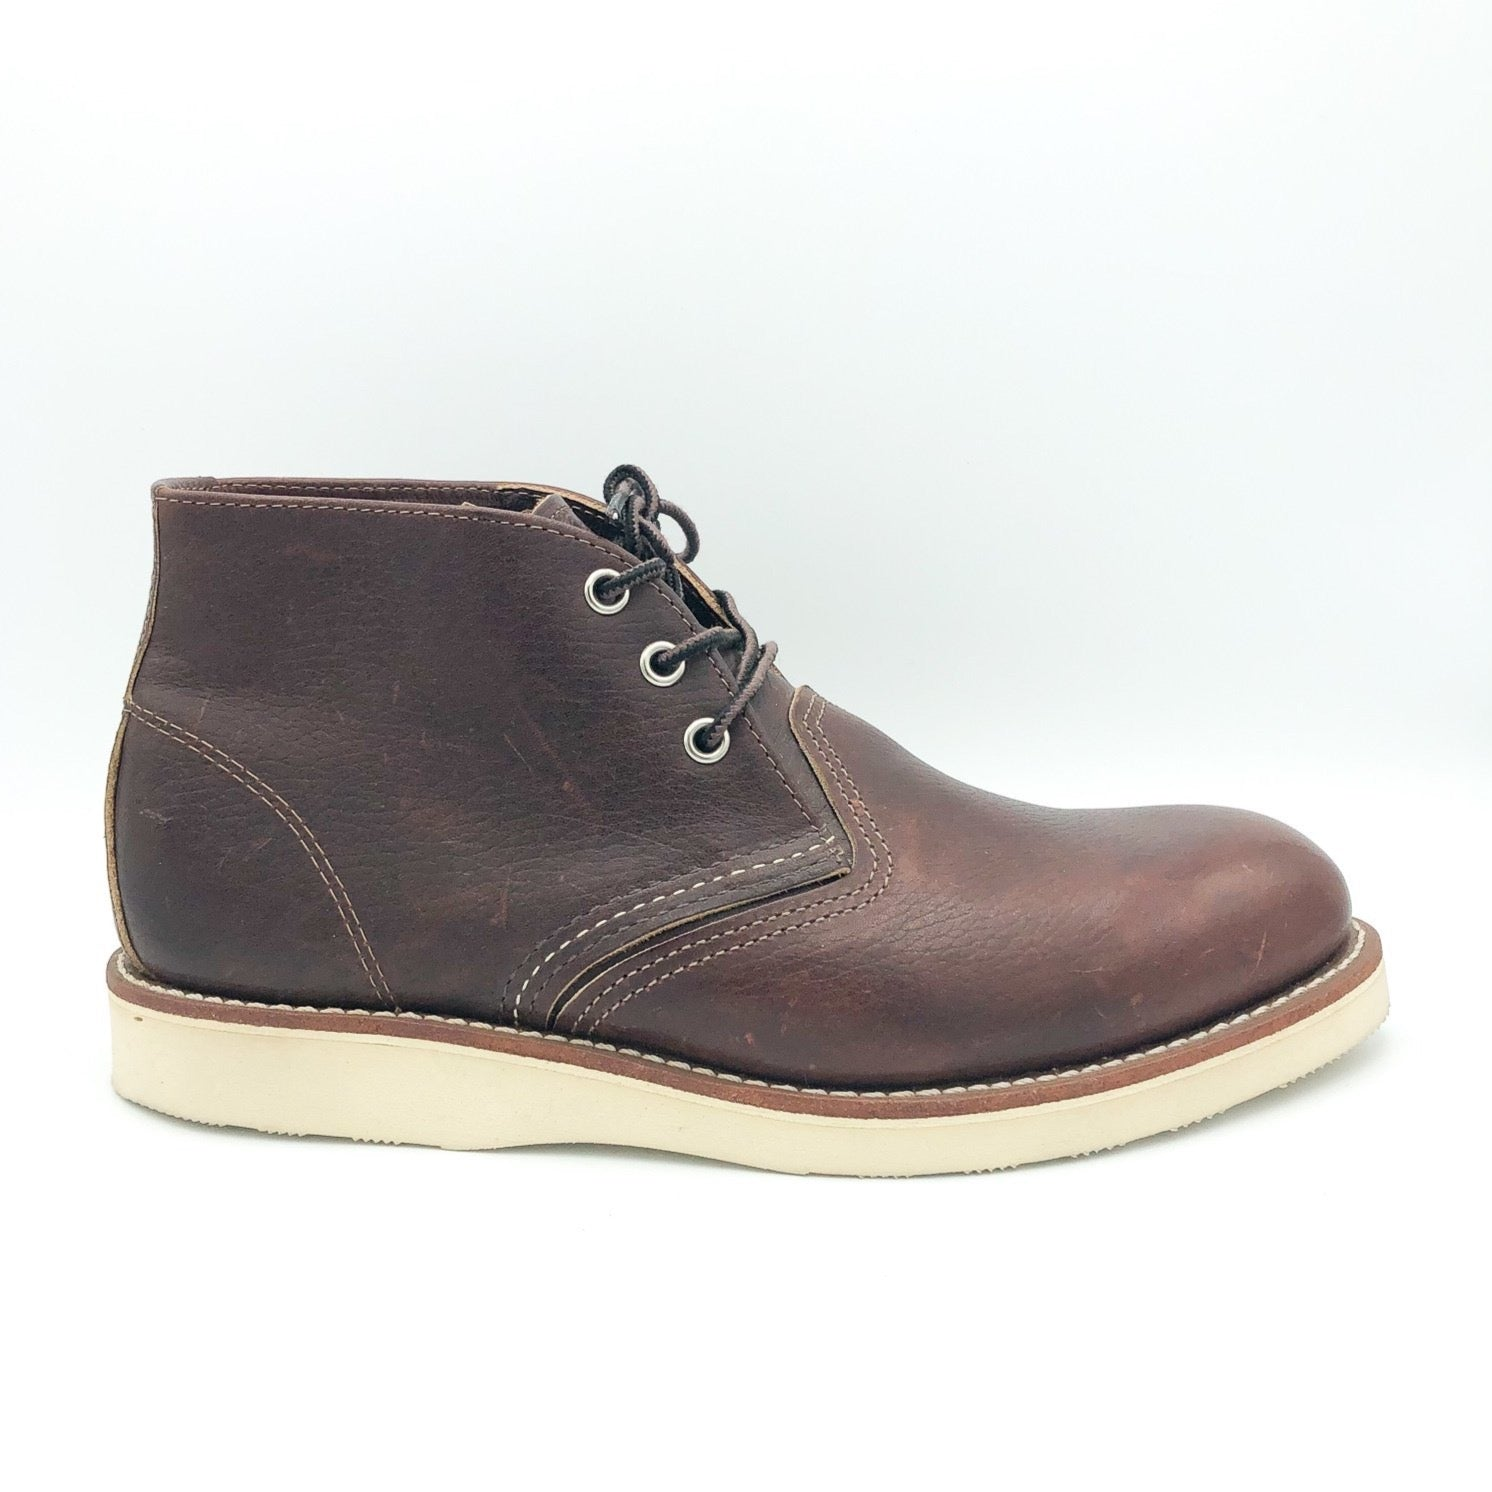 RED WING - MEN'S CLASSIC CHUKKA IN BRIAR OIL SLICK LEATHER